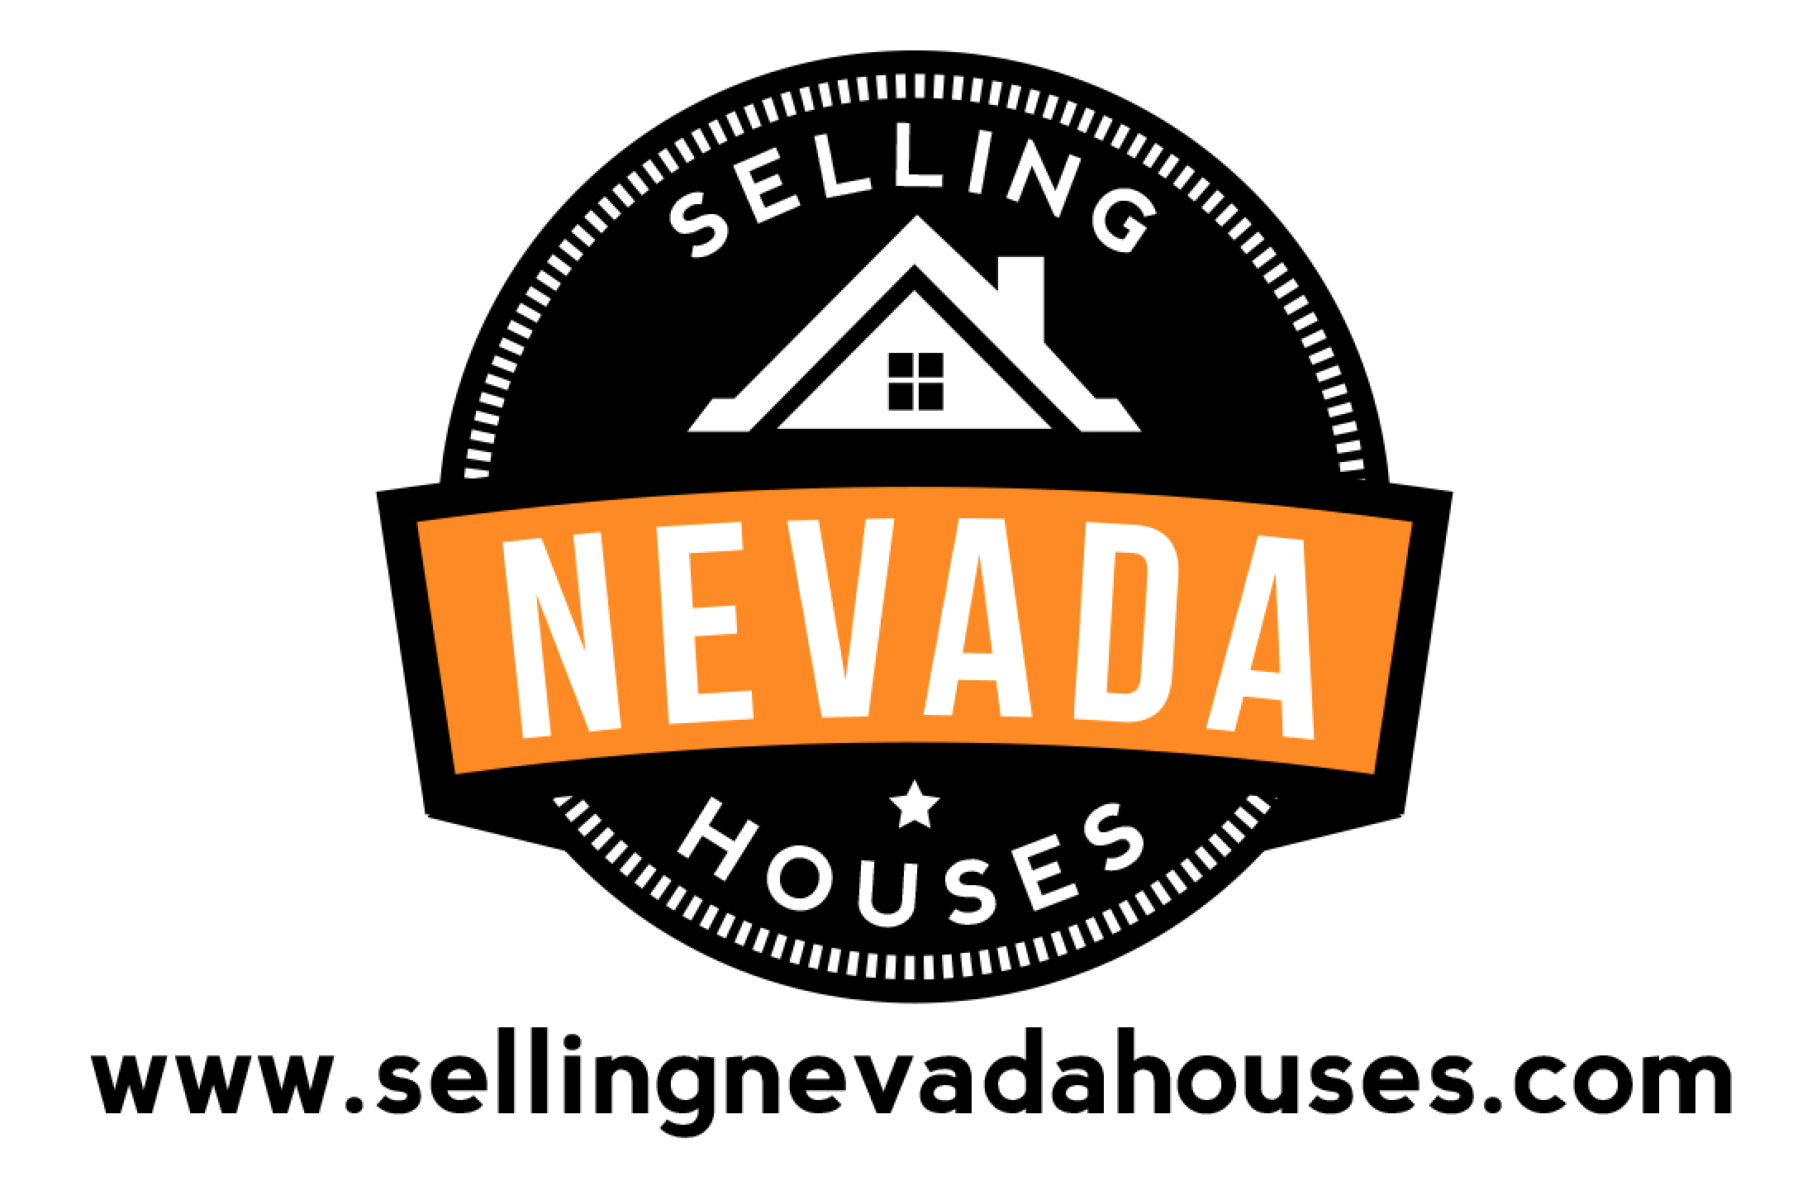 Selling Nevada houses at an extreme discount! logo